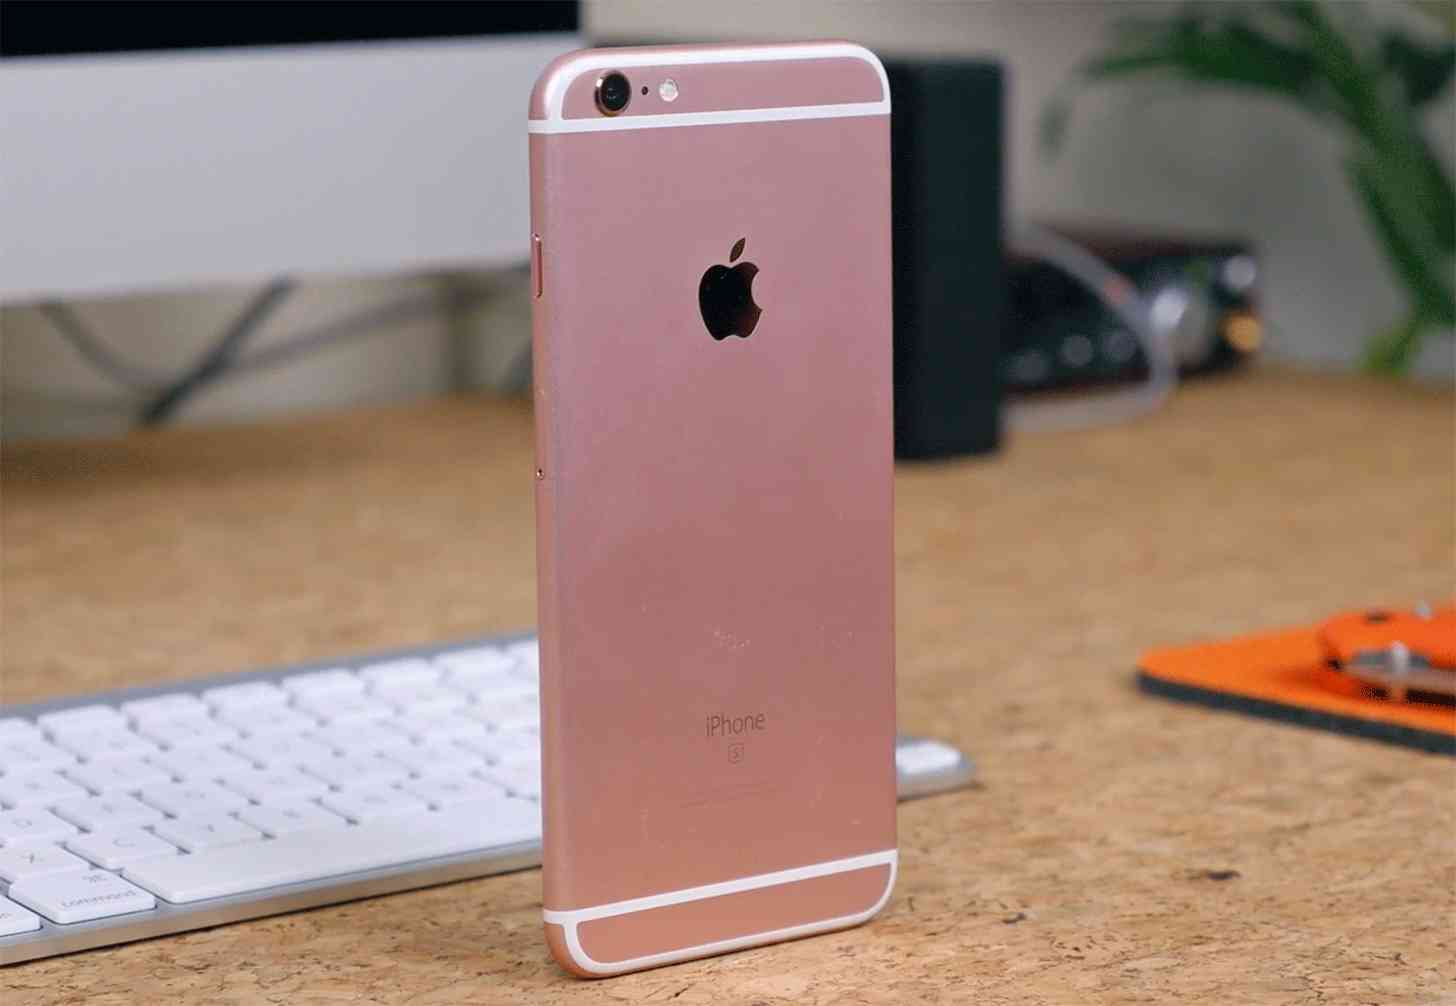 iPhone 6s Plus rear Rose Gold